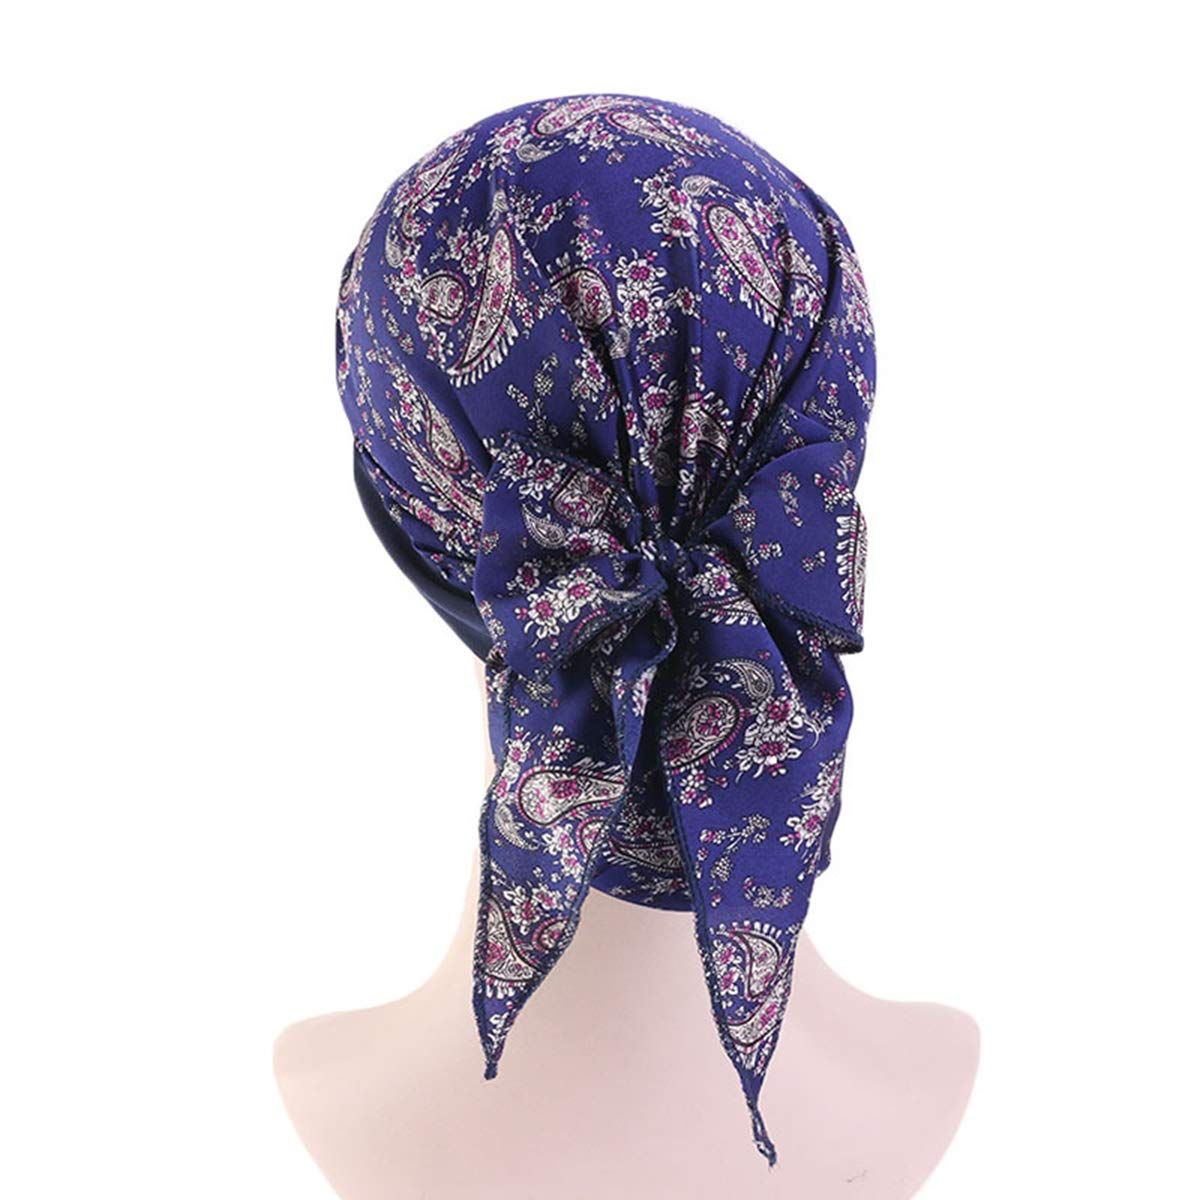 Funshow Womens Turban Head Scarves Pre-Tied Chemo Hat Headwraps Cancer Cap Navy